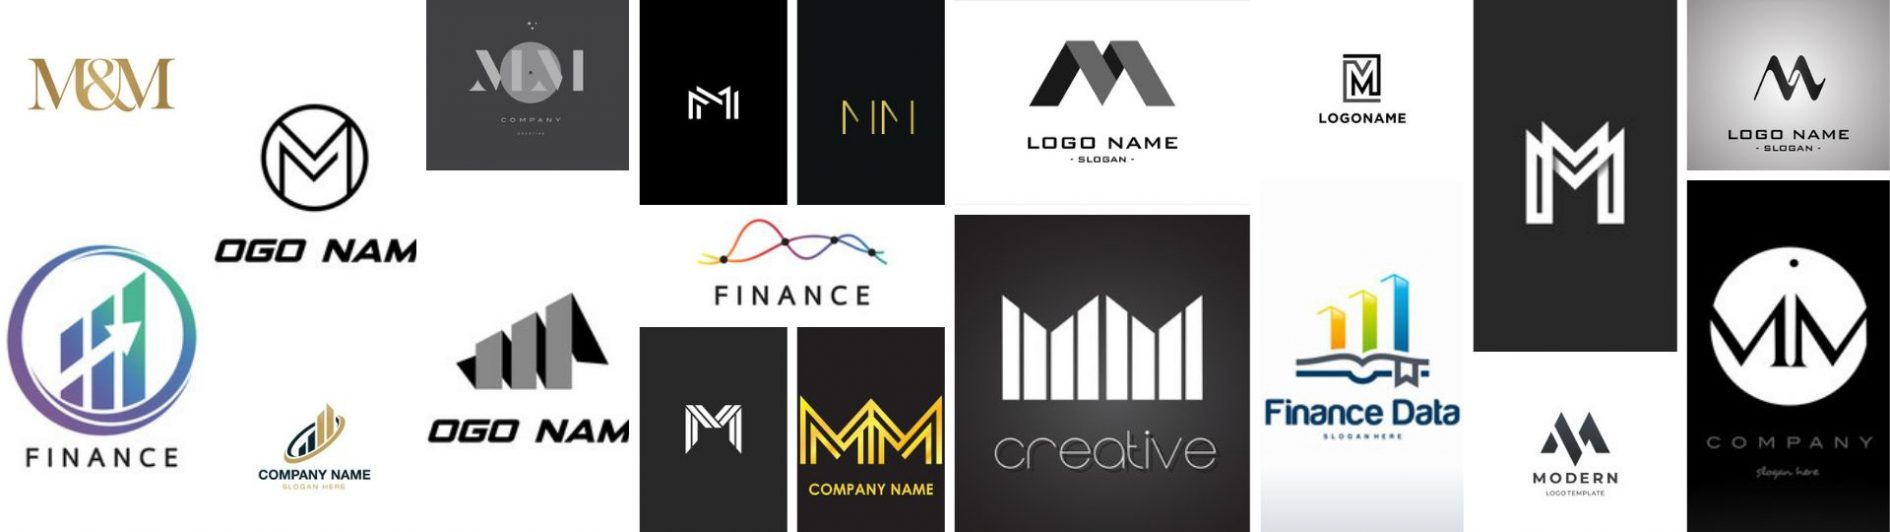 M and M Chartered Accountants Logo Design Moodboard